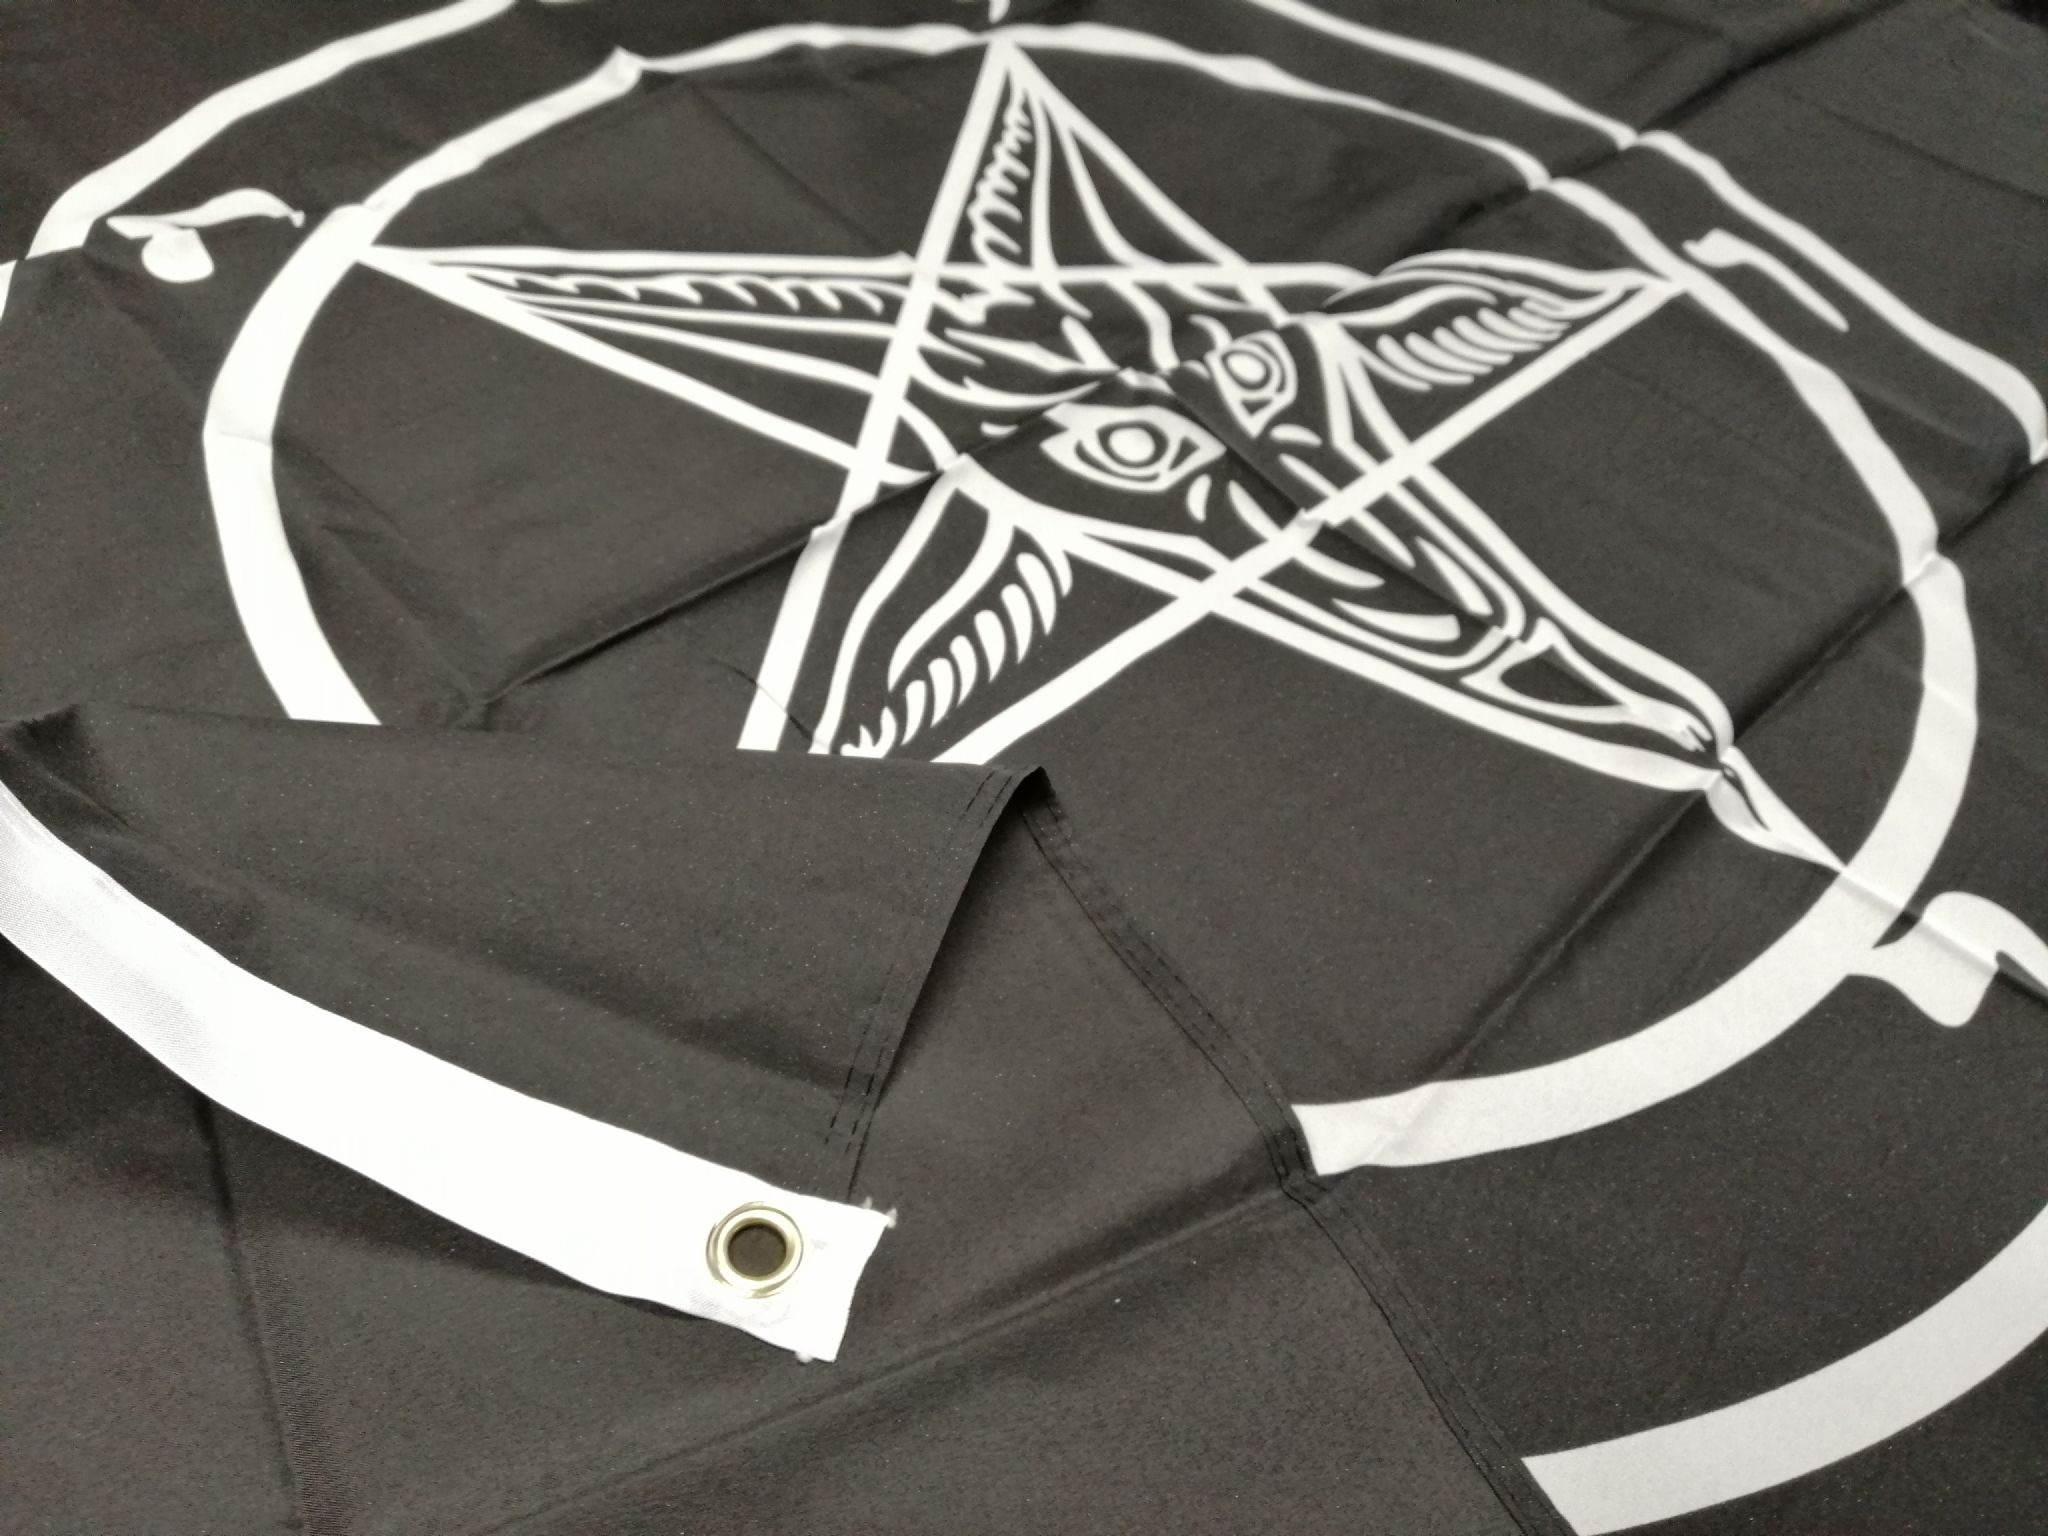 Baphomet Church of Satan Occult Polyester Flag Bunting 9m long with 30 Flags